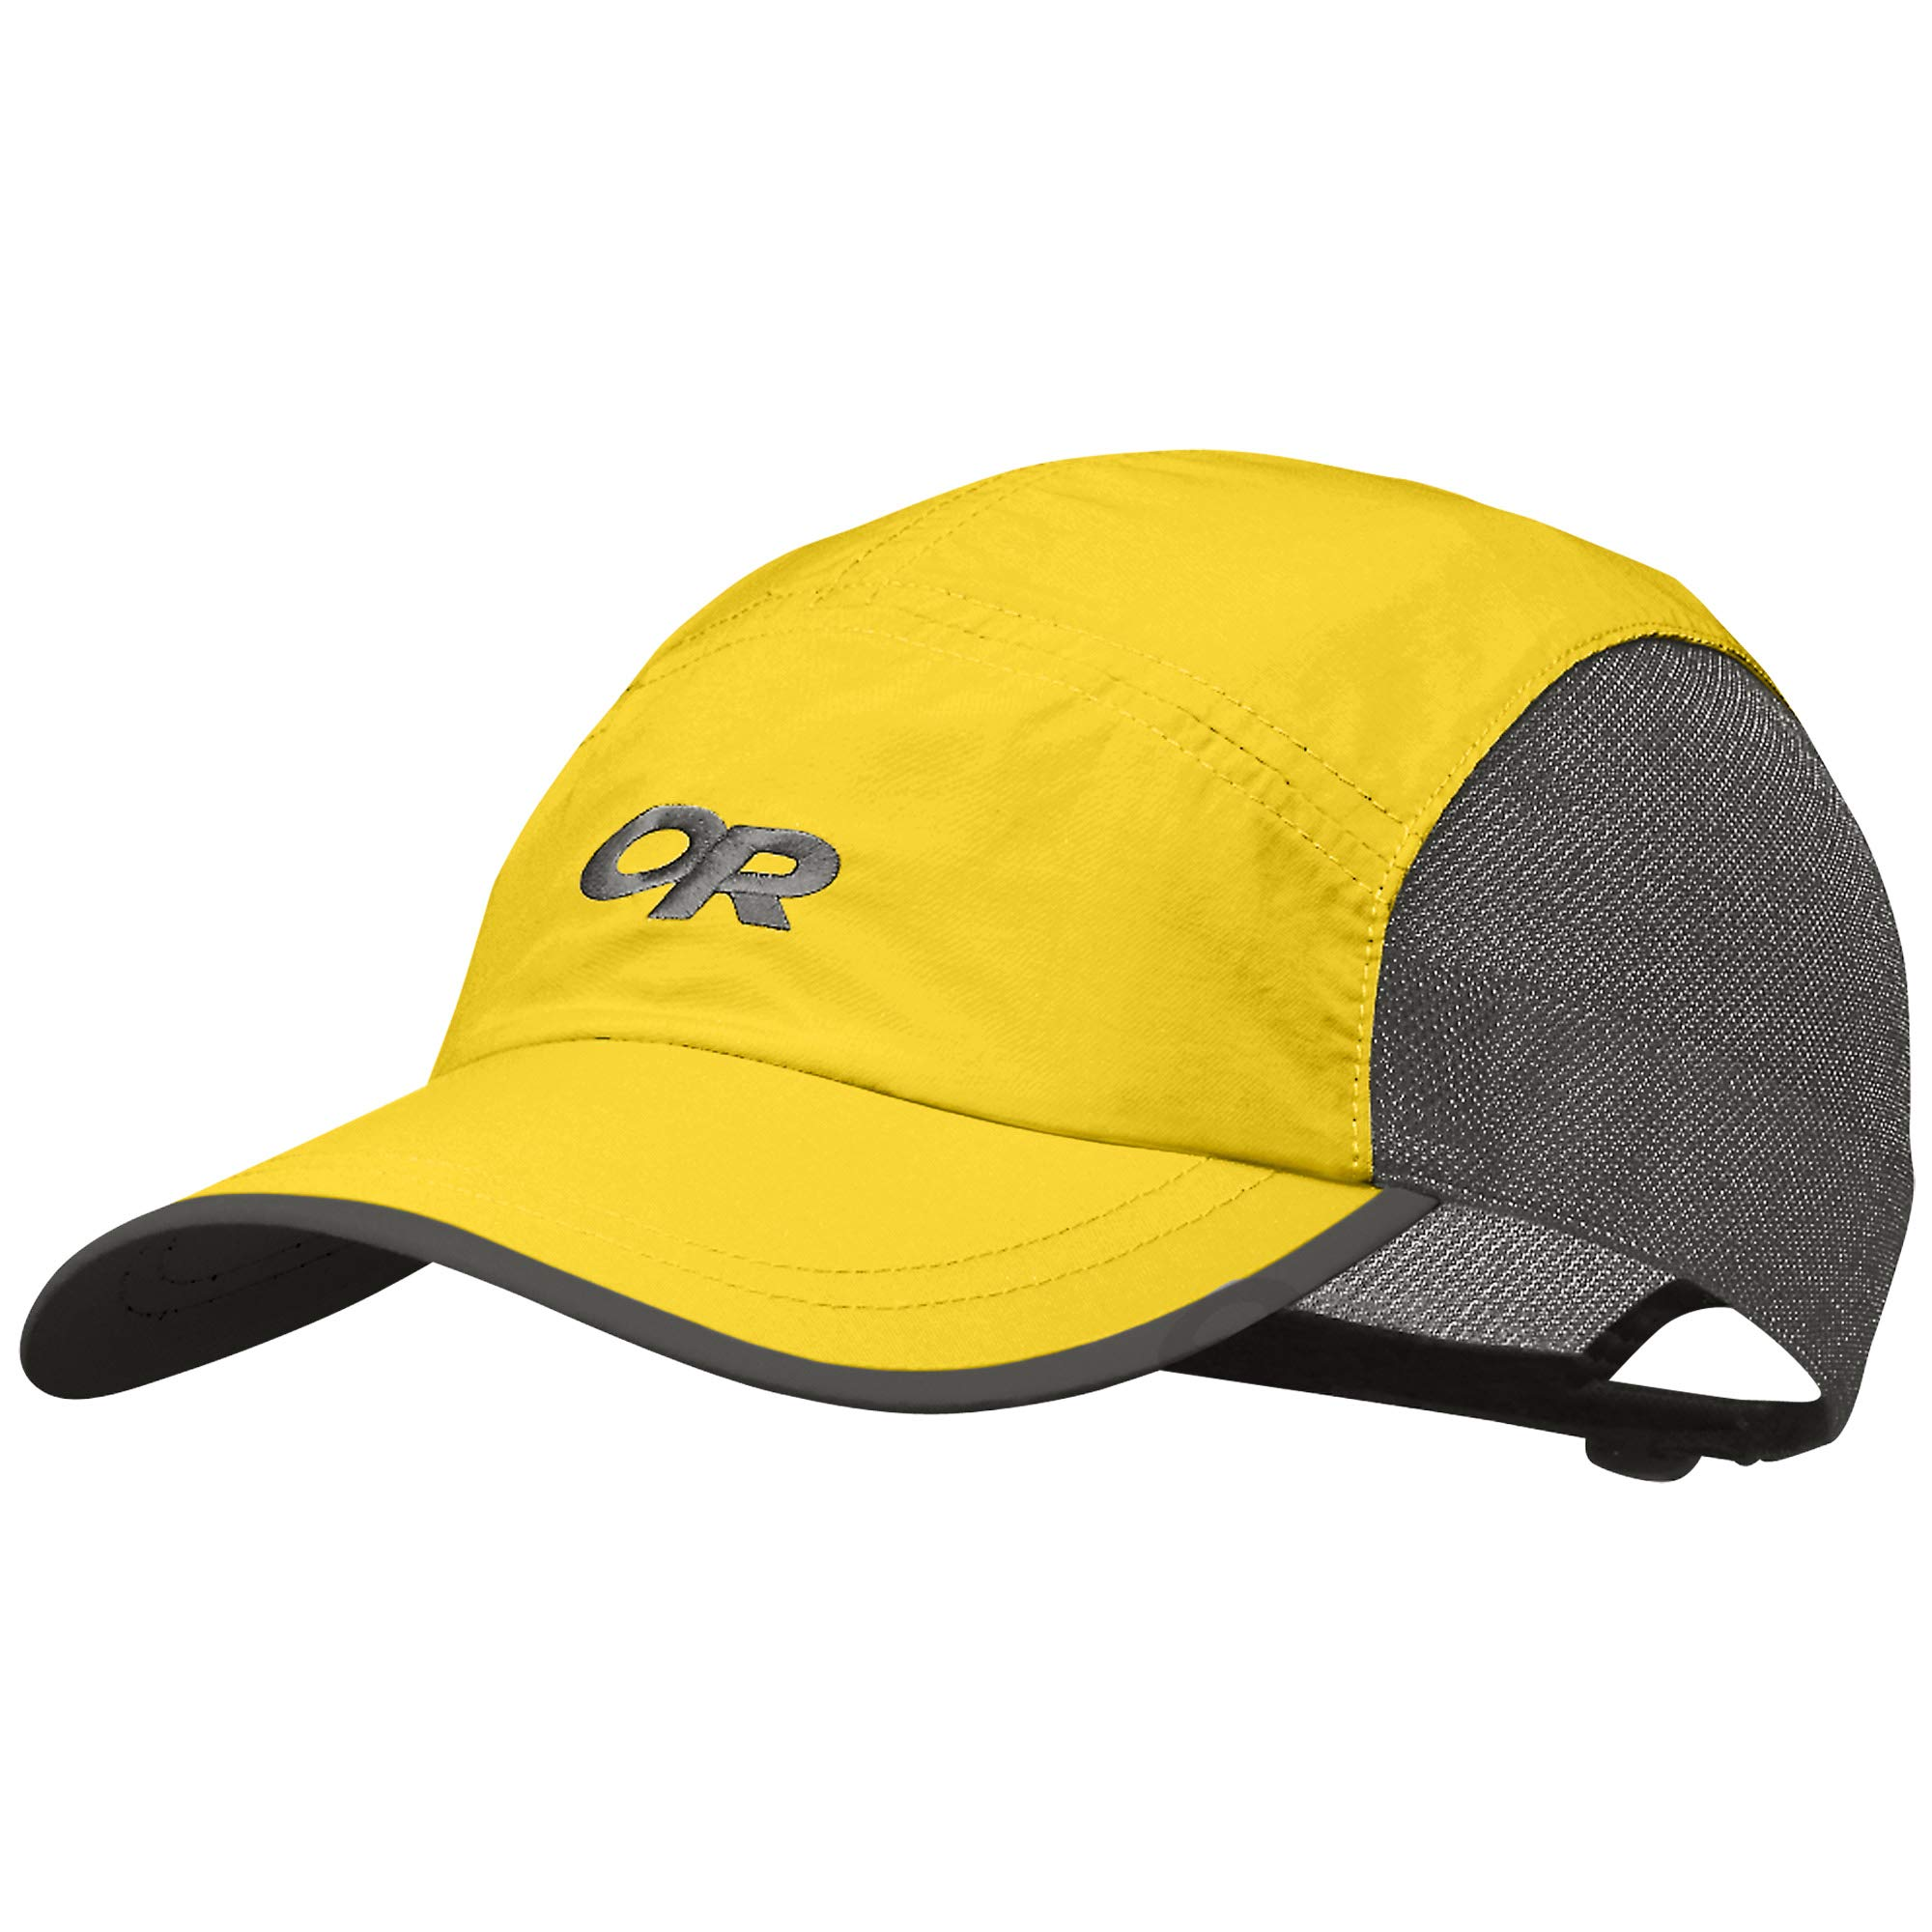 Outdoor Research Swift Cap Sulphur, One Size by Outdoor Research